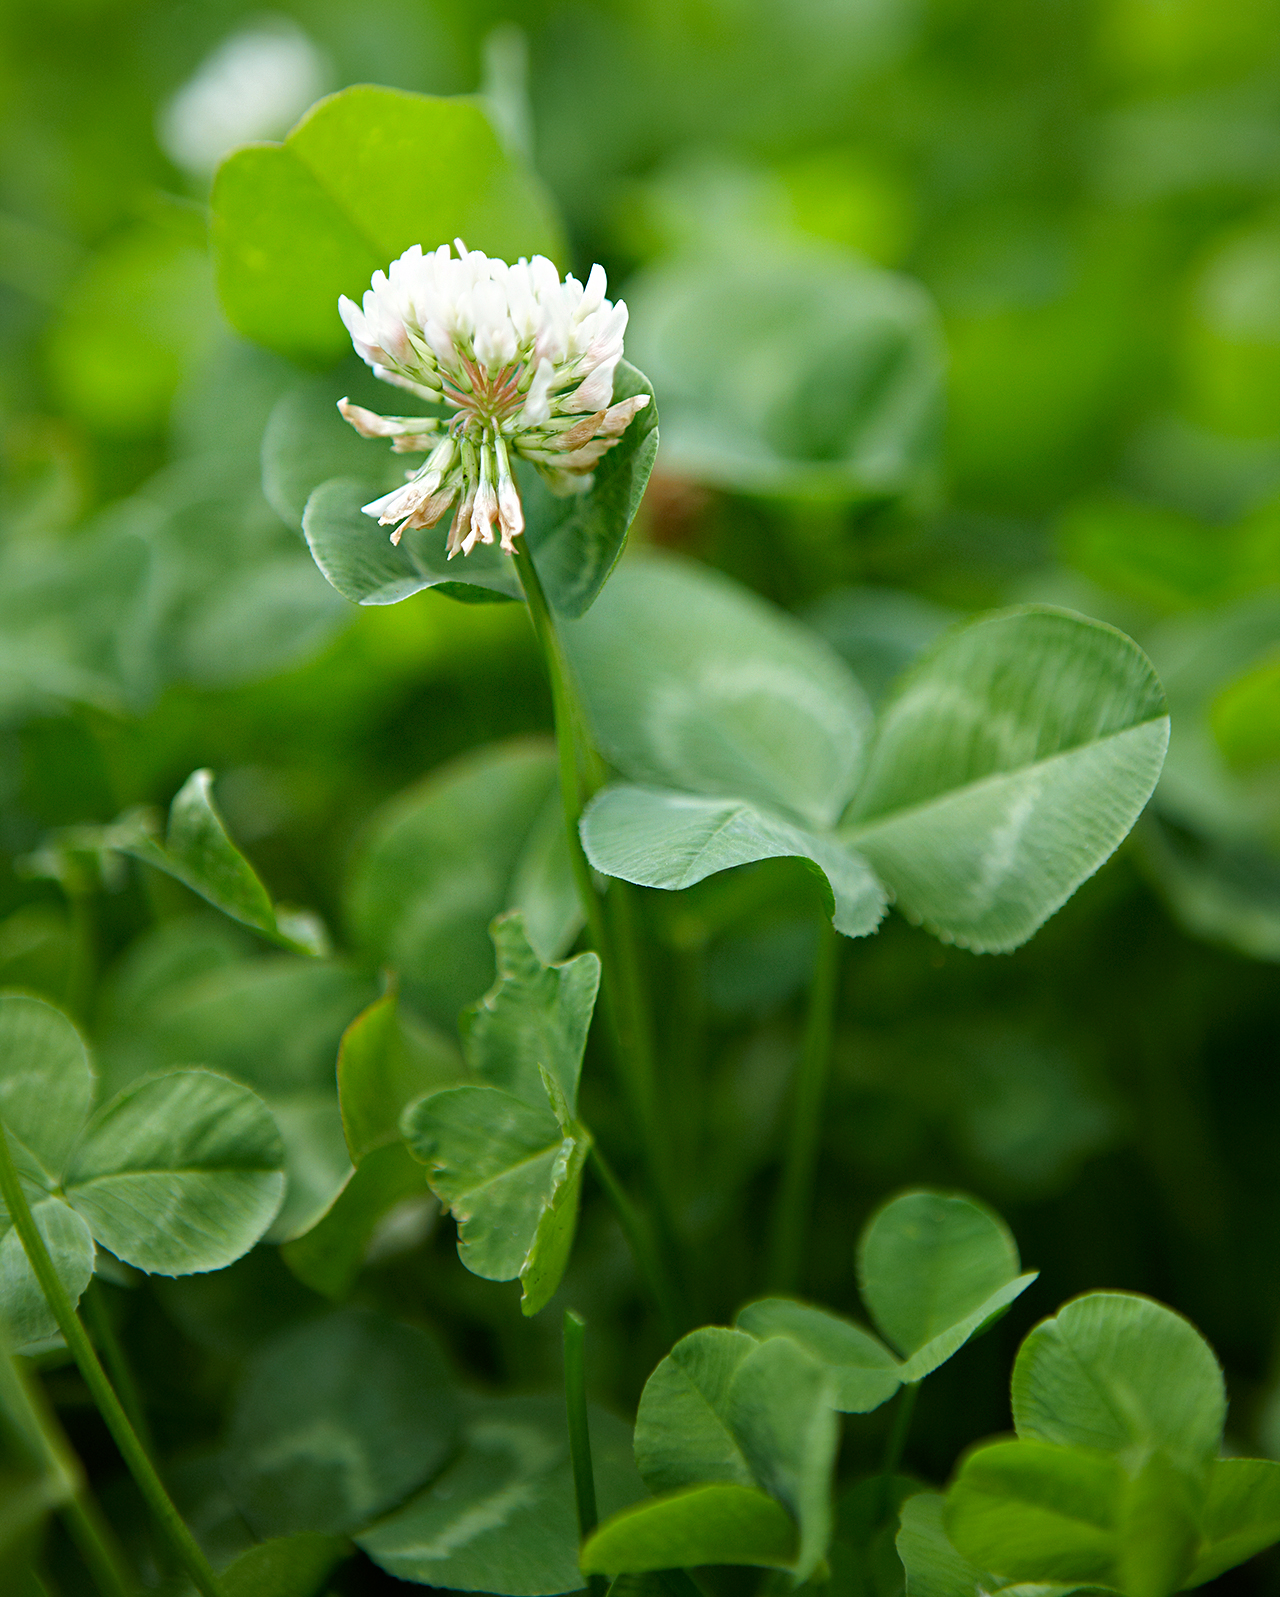 detail of white clover weed and flower head